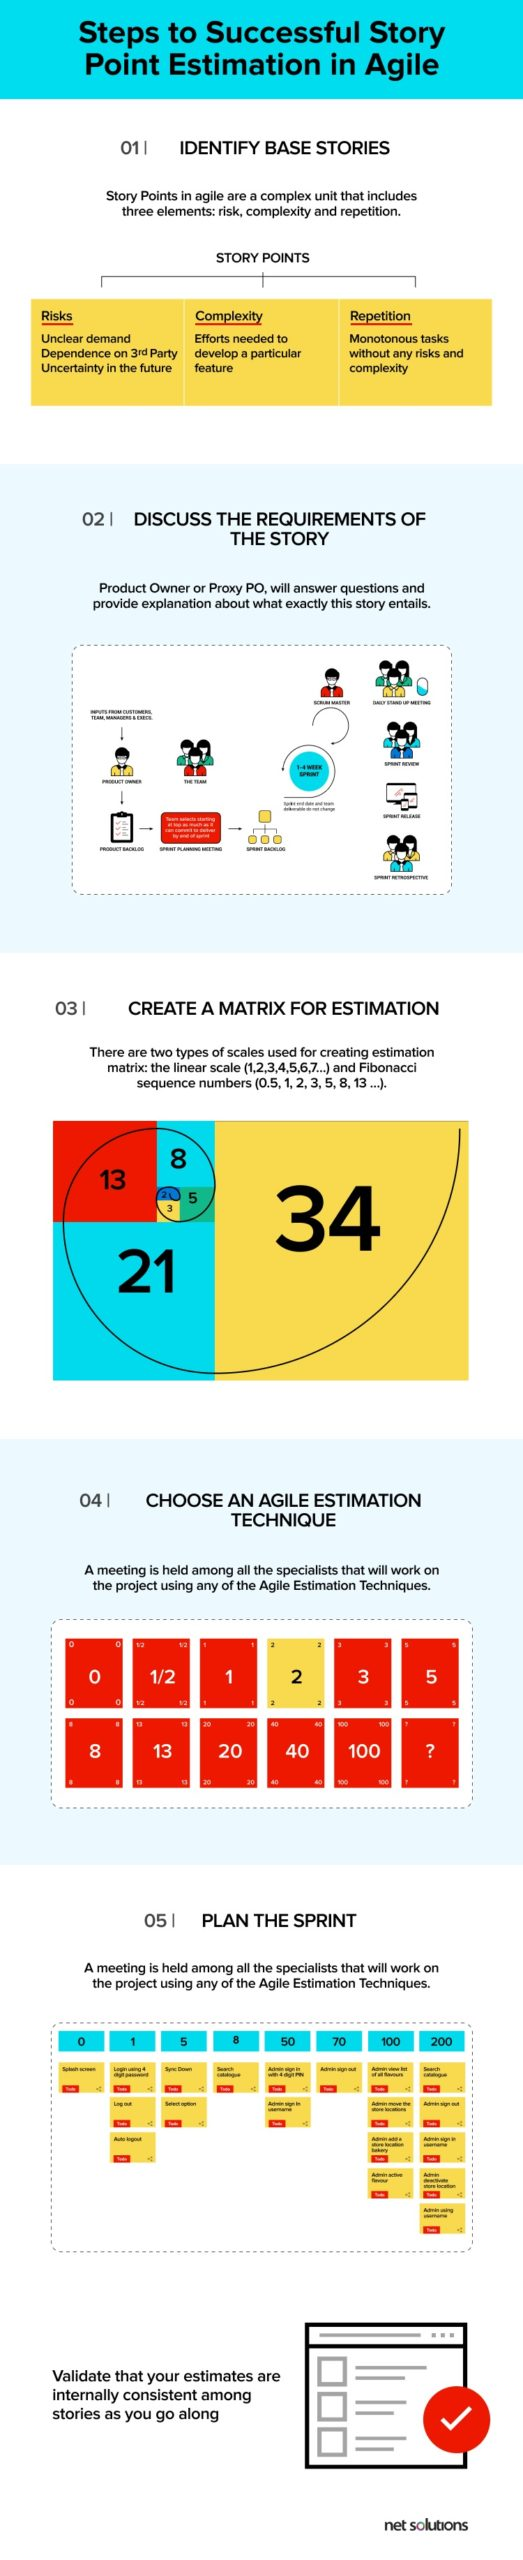 Steps to Successful Story Point Estimation in Agile